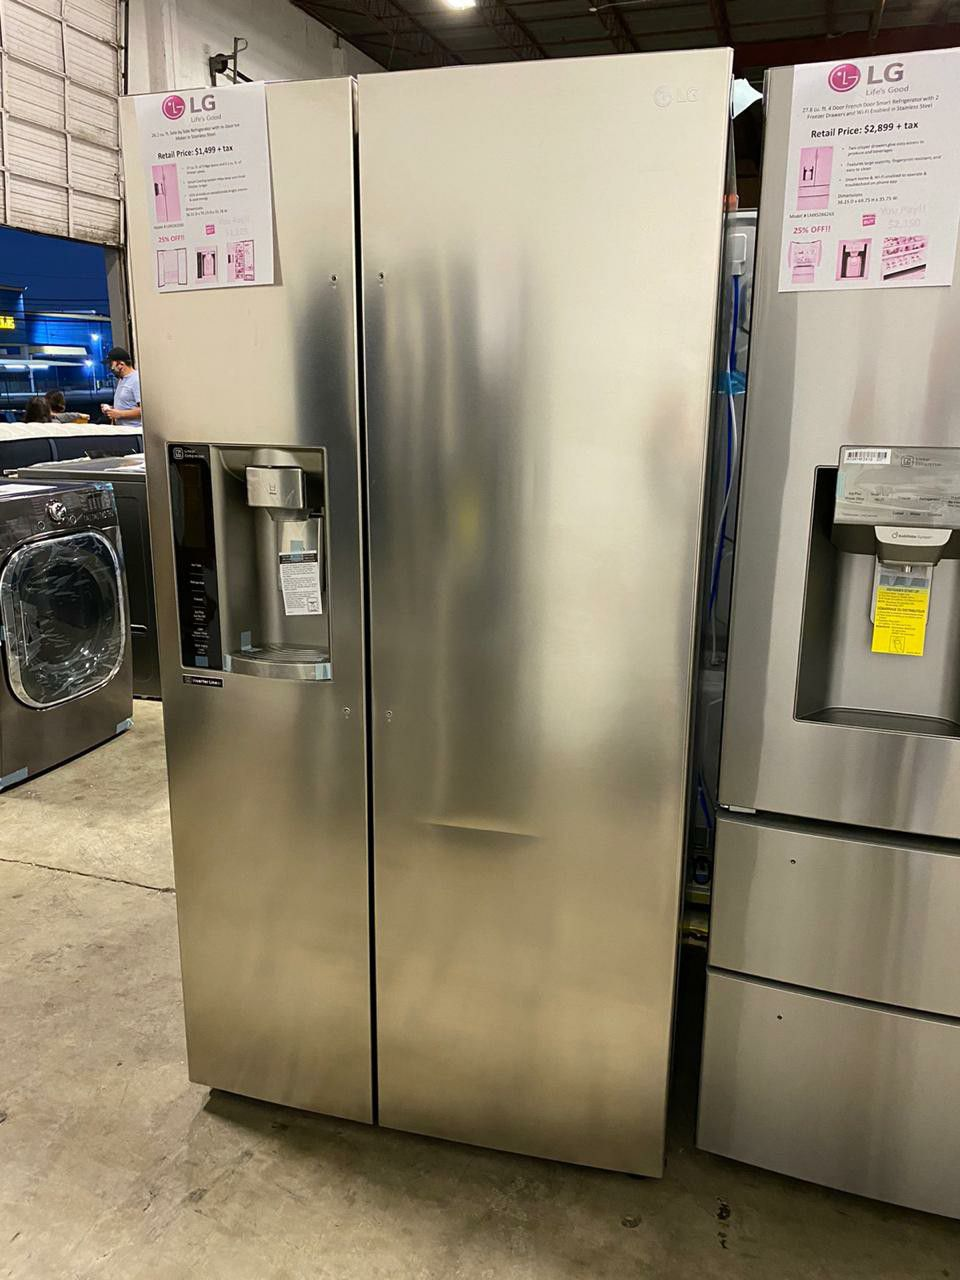 LG SIDE BY SIDE WITH IN DOOR ICE MAKER STAINLESS STEEL REFRIGERATOR LSXS26326S